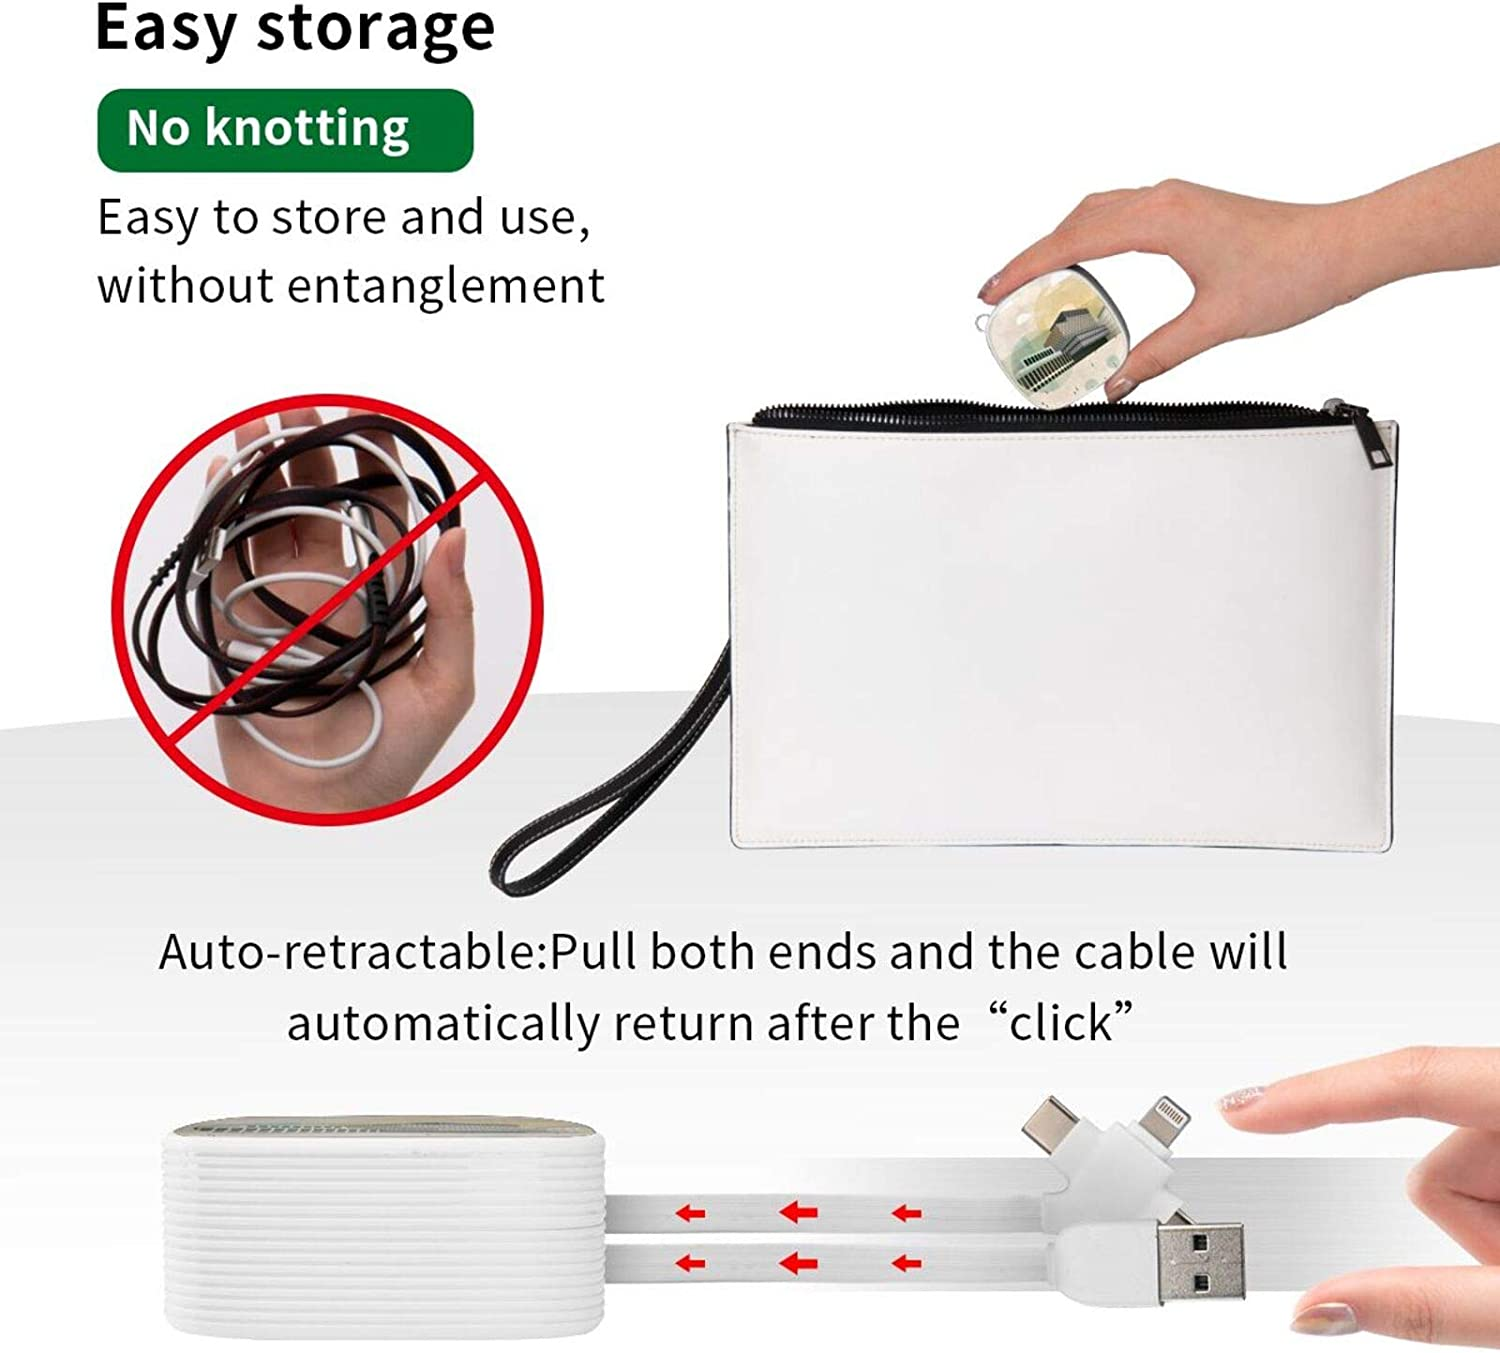 Multi Charging Cable Portable 3 in 1 Centenary Square Throw Pillow USB Power Cords for Cell Phone Tablets and More Devices Charging